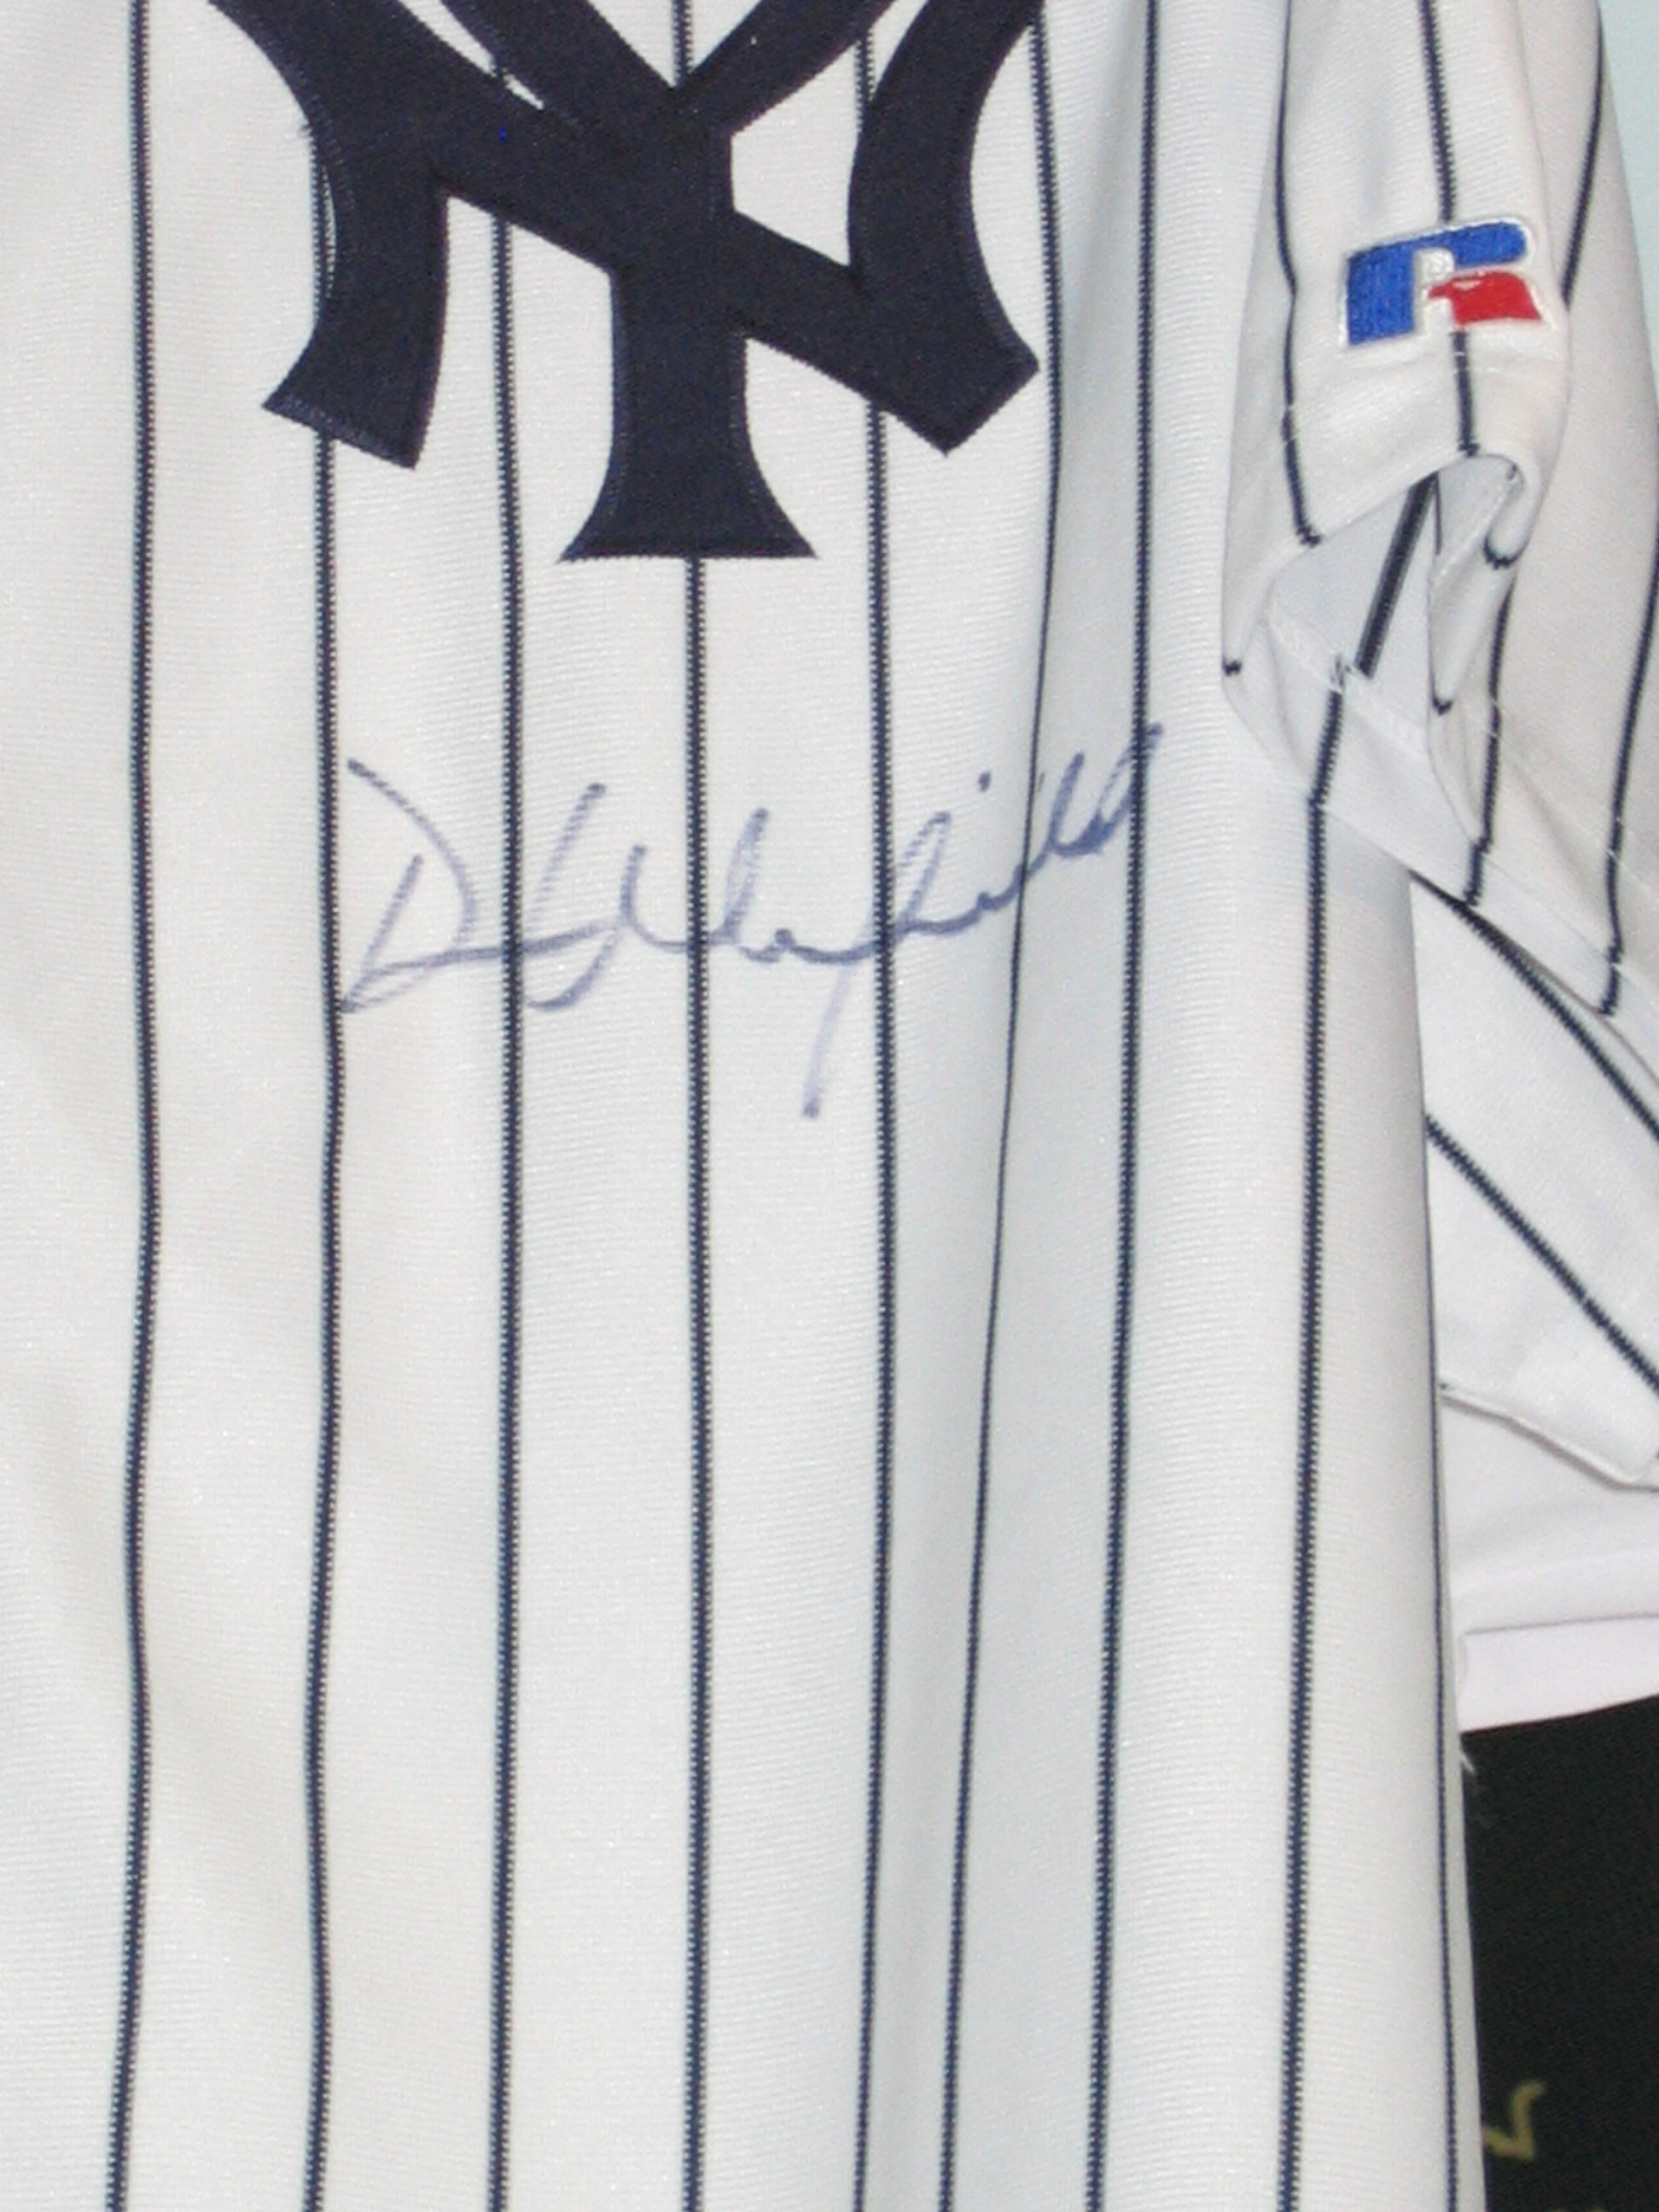 Dave Winfield Autographed Jersey (New York Yankees)